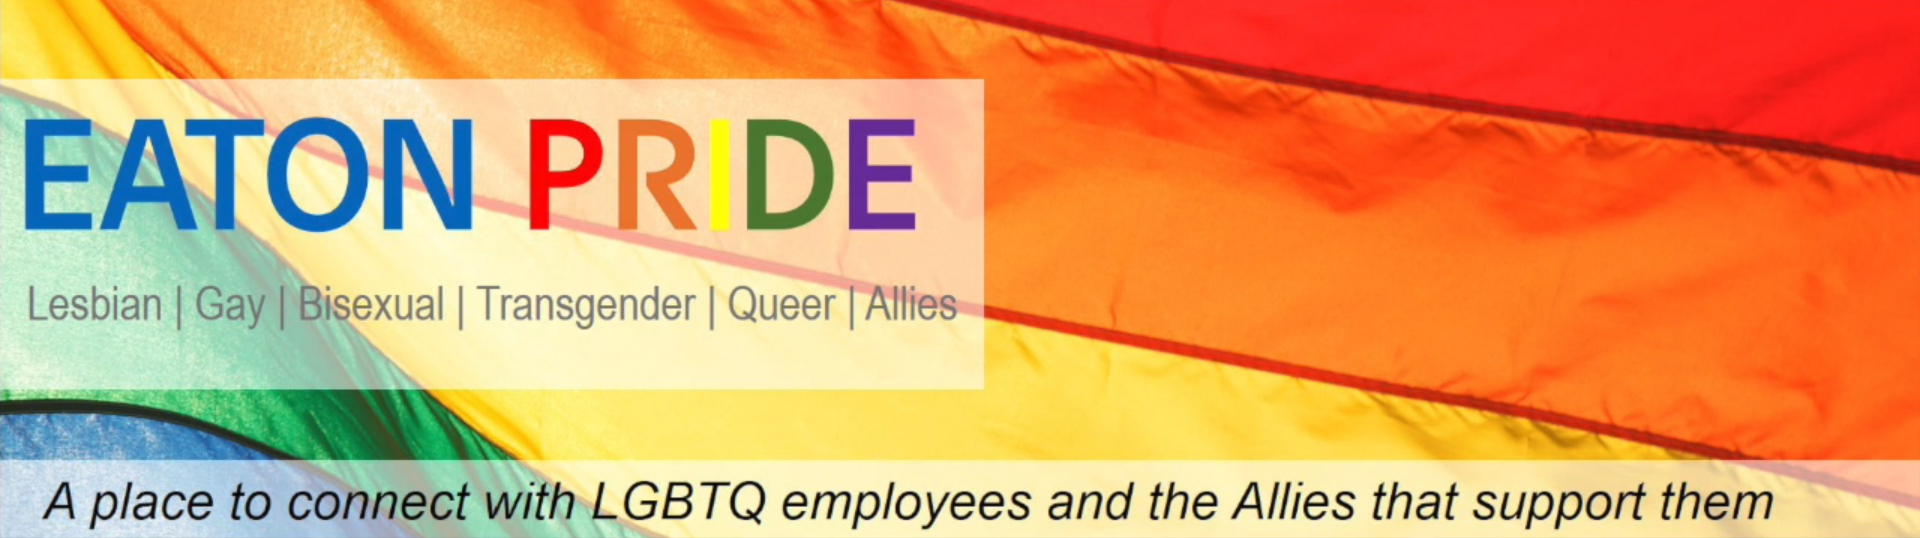 Eaton LGBTQ+ and allies inclusion resource group celebrate PRIDE